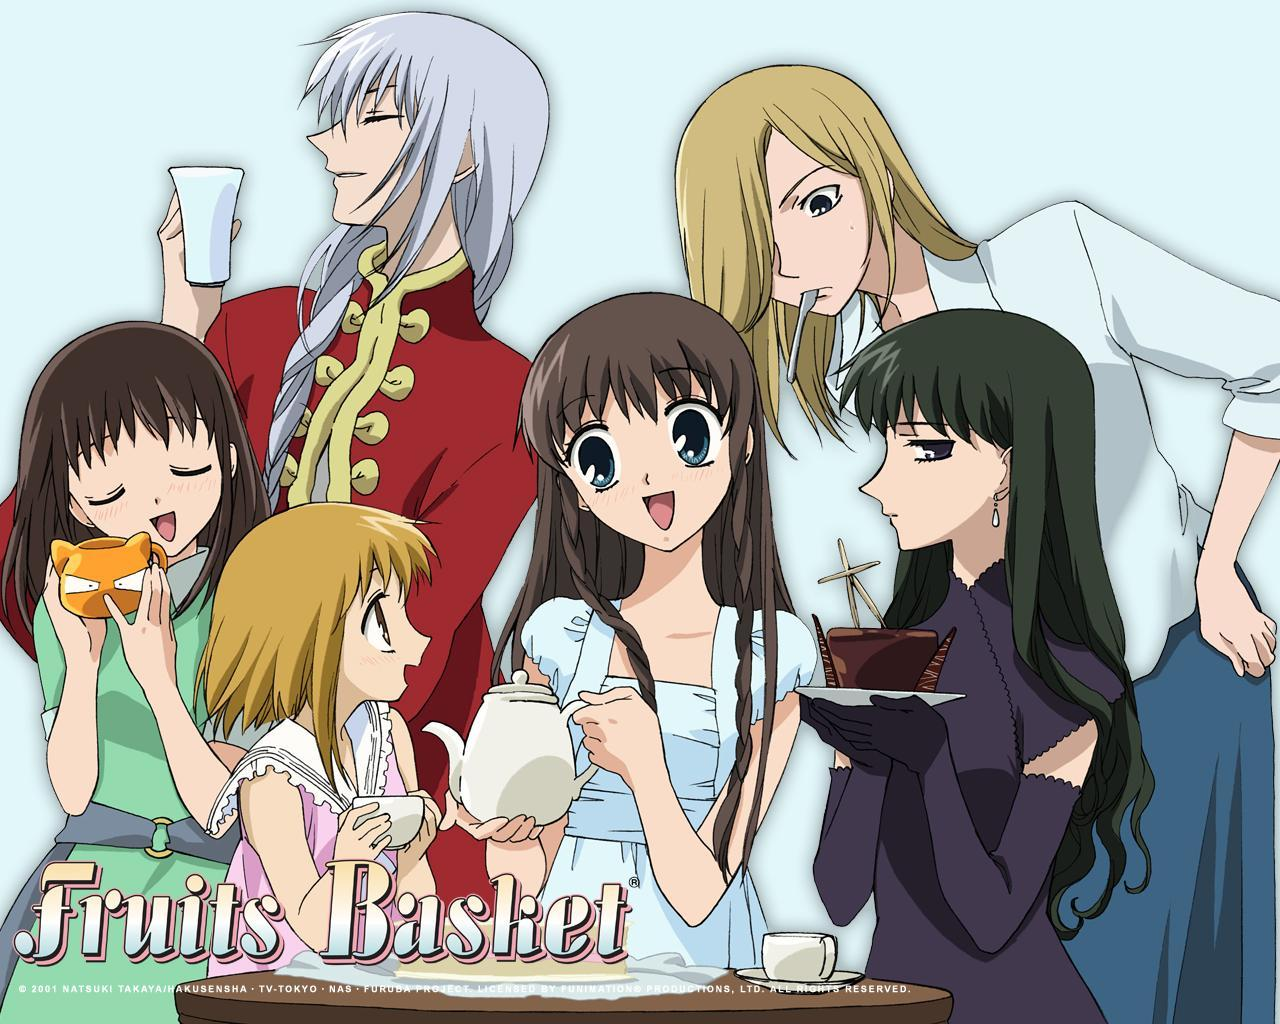 *puts away armor for now* Anyways, what's your opinion on Fruits Basket?